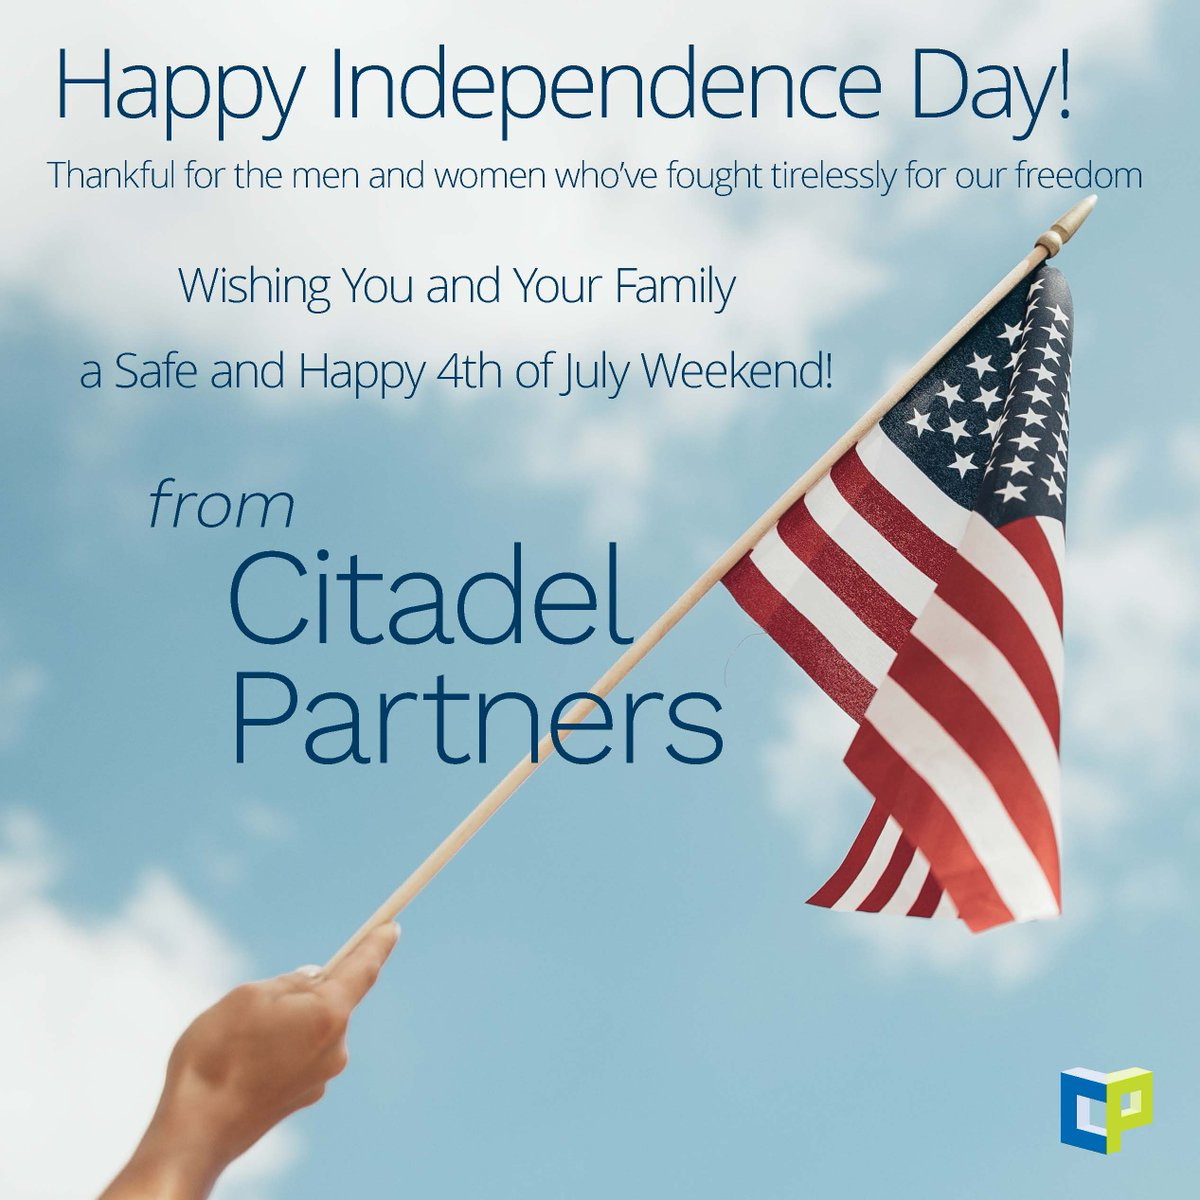 test Twitter Media - Wishing You and Your Family a Safe and Happy 4th of July Weekend!  #CitadelPartners #dallascommercialrealestate #thankyouforyourservice #4thofjuly2021 #americanflag #godblessamerica https://t.co/FPveQkRx8o